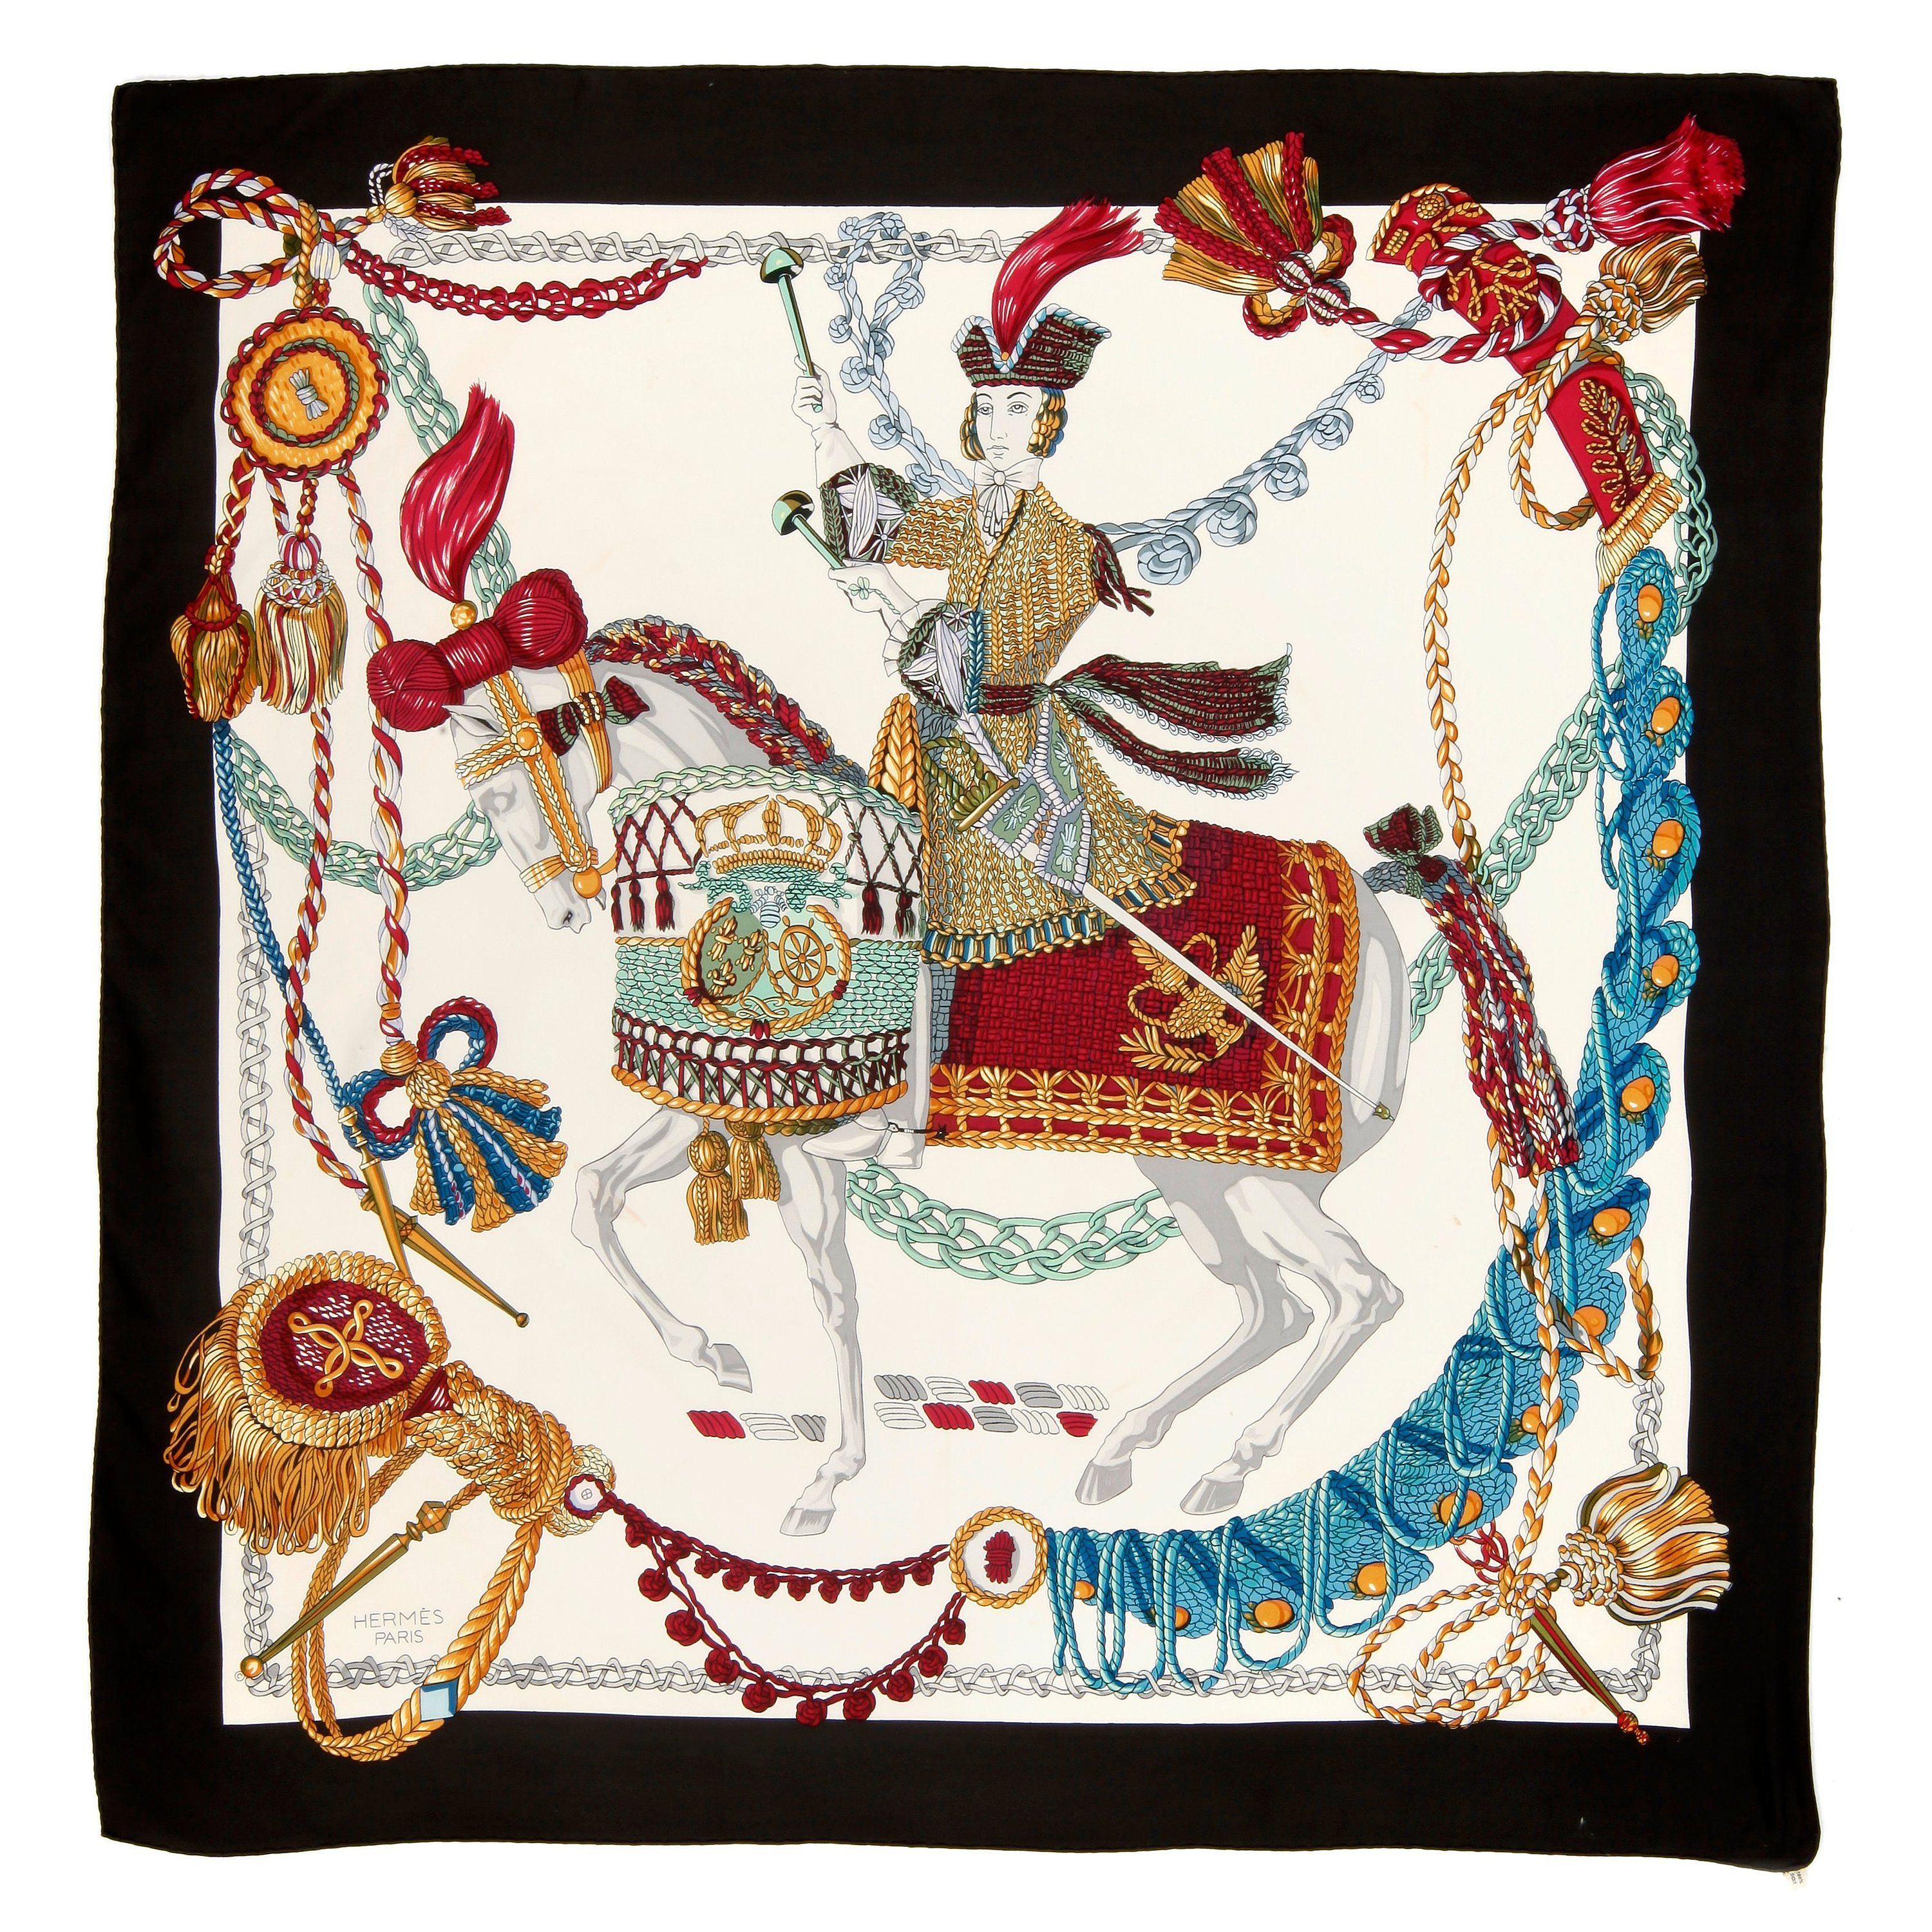 e2613dbcd82d91 Vintage Hermes Silk Scarf Blouse Les Cles or The Keys Exclusif Label ...